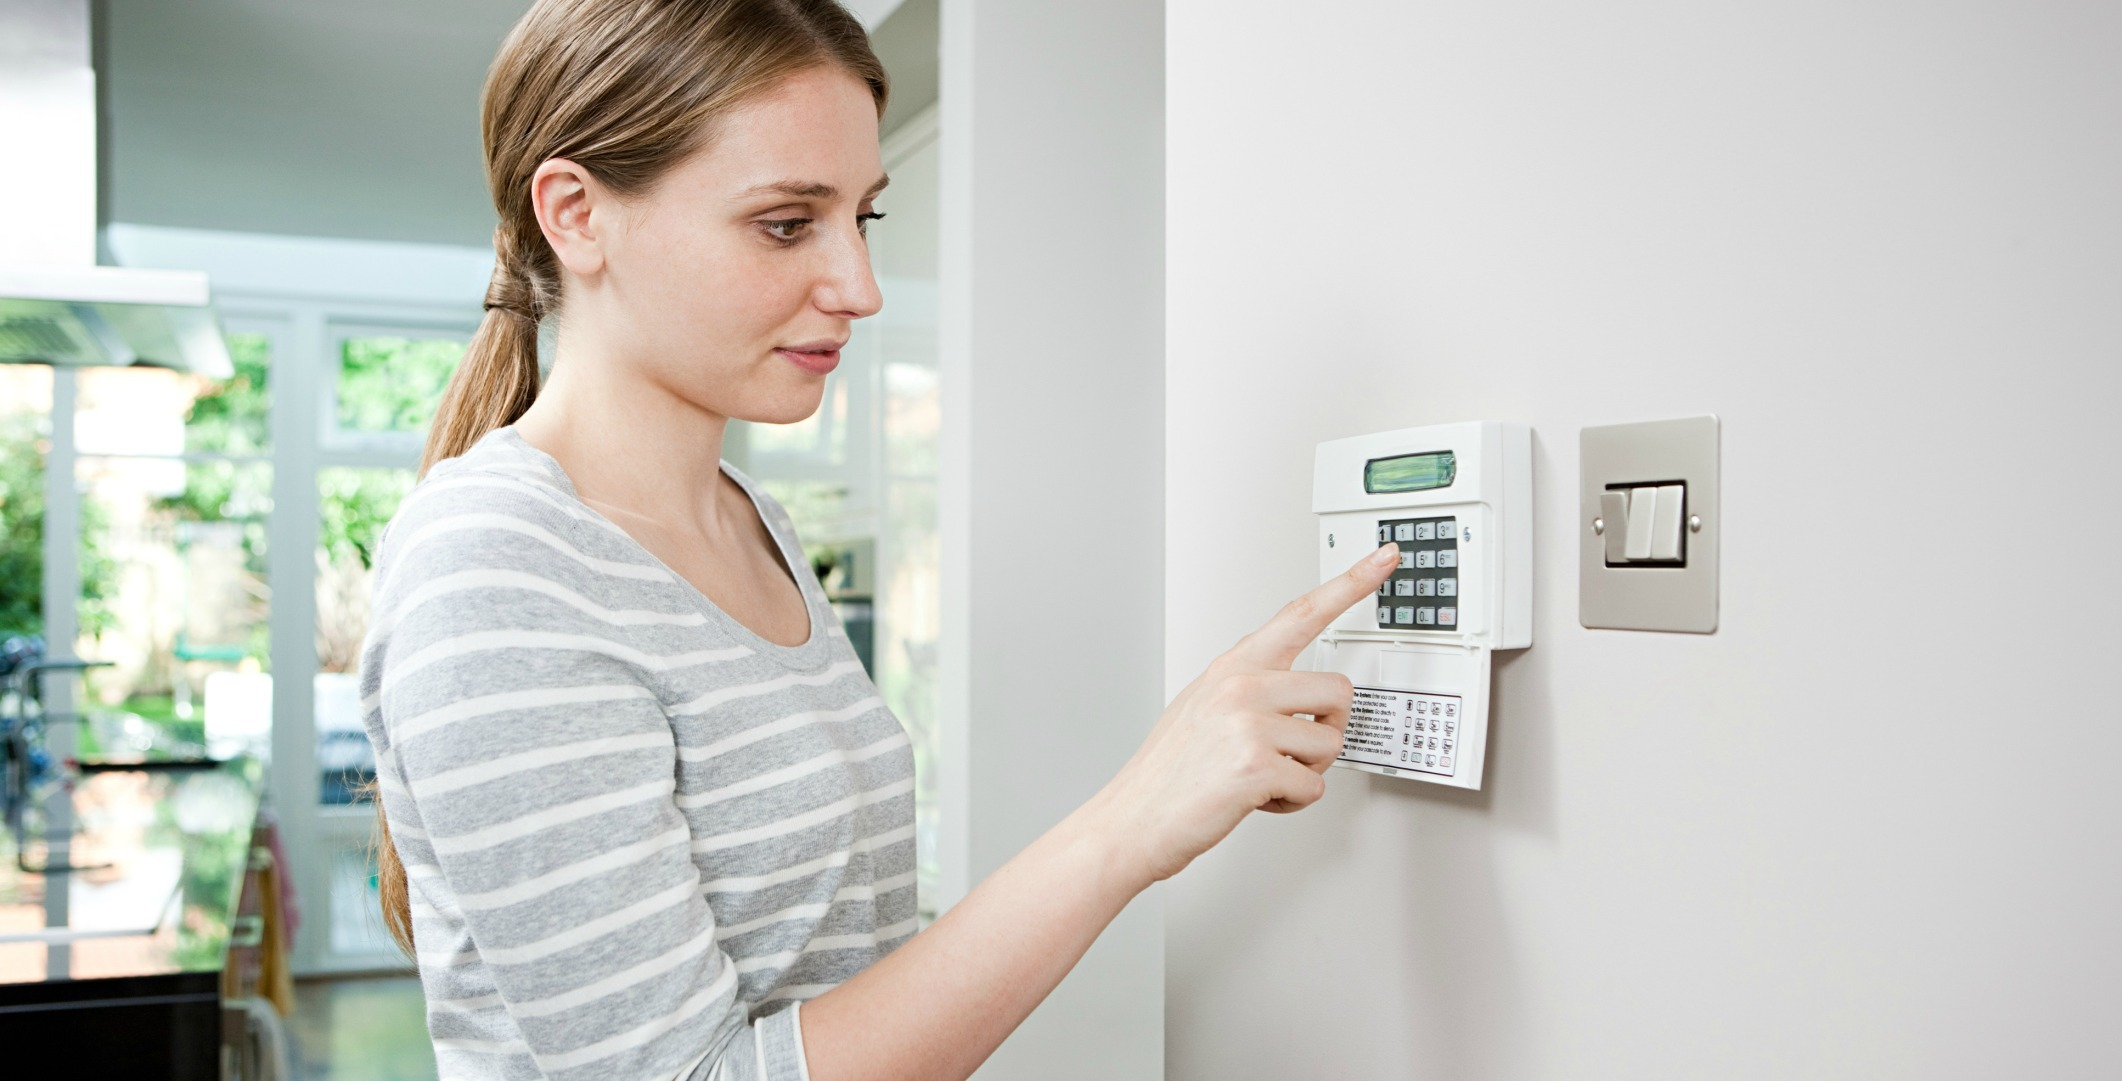 Home Alarm System Could Be Company-Provided